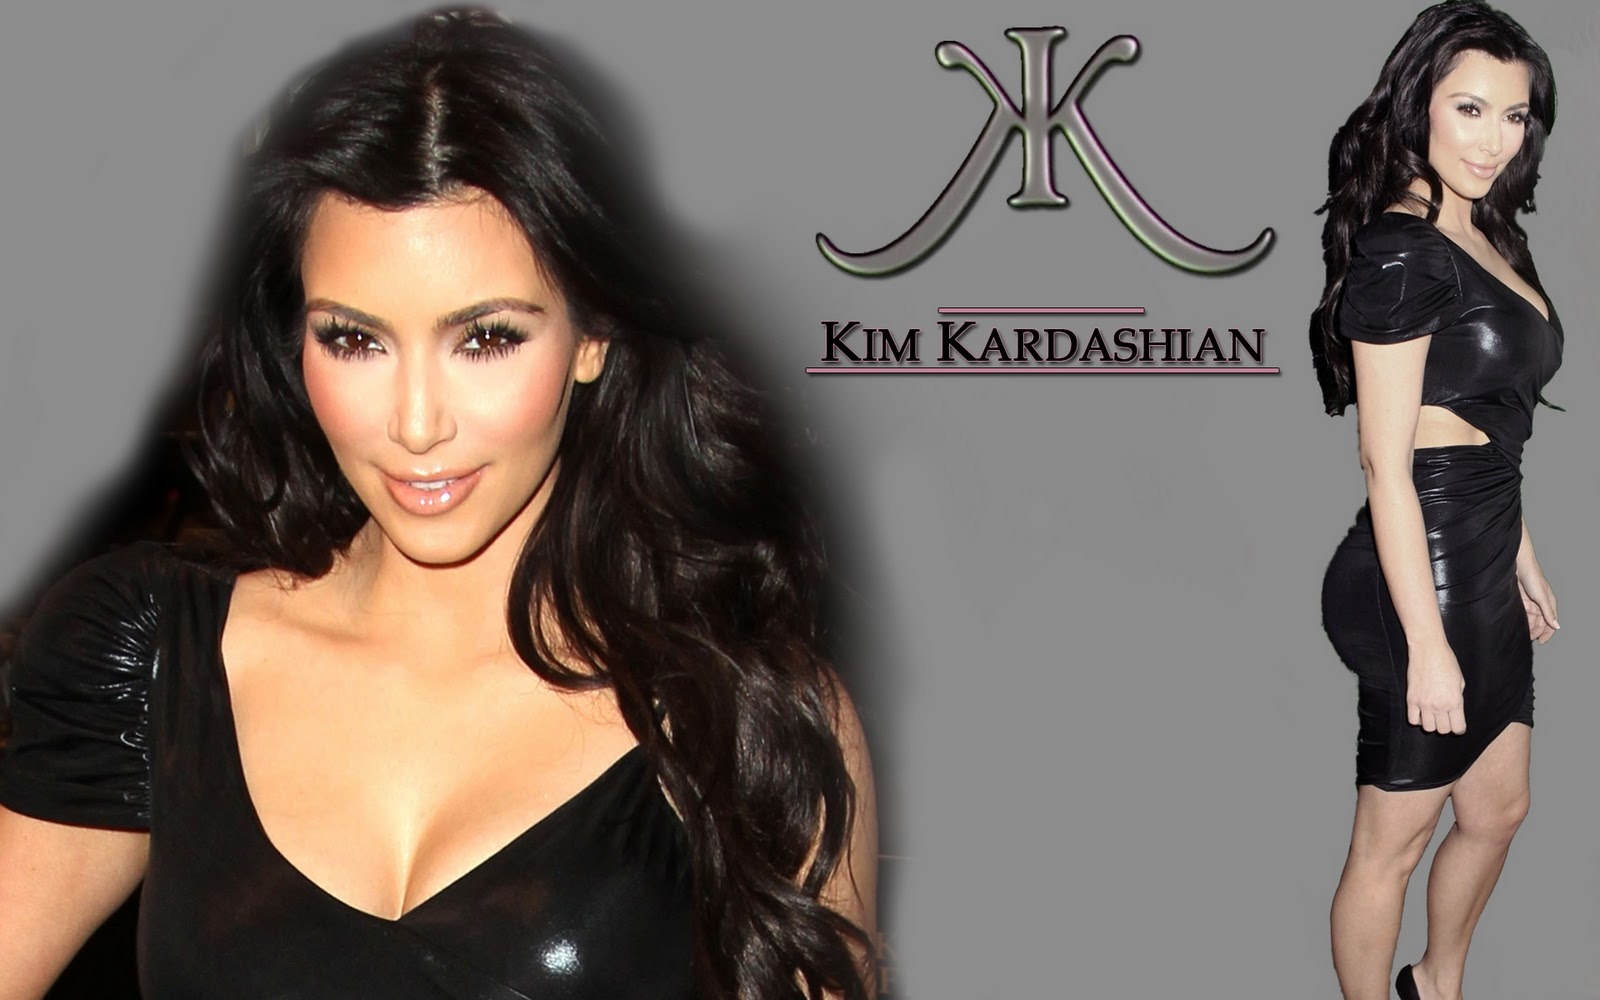 desktop kim kardashian wallpapers kim kardashian wallpaper hd 25jpg 1600x1000